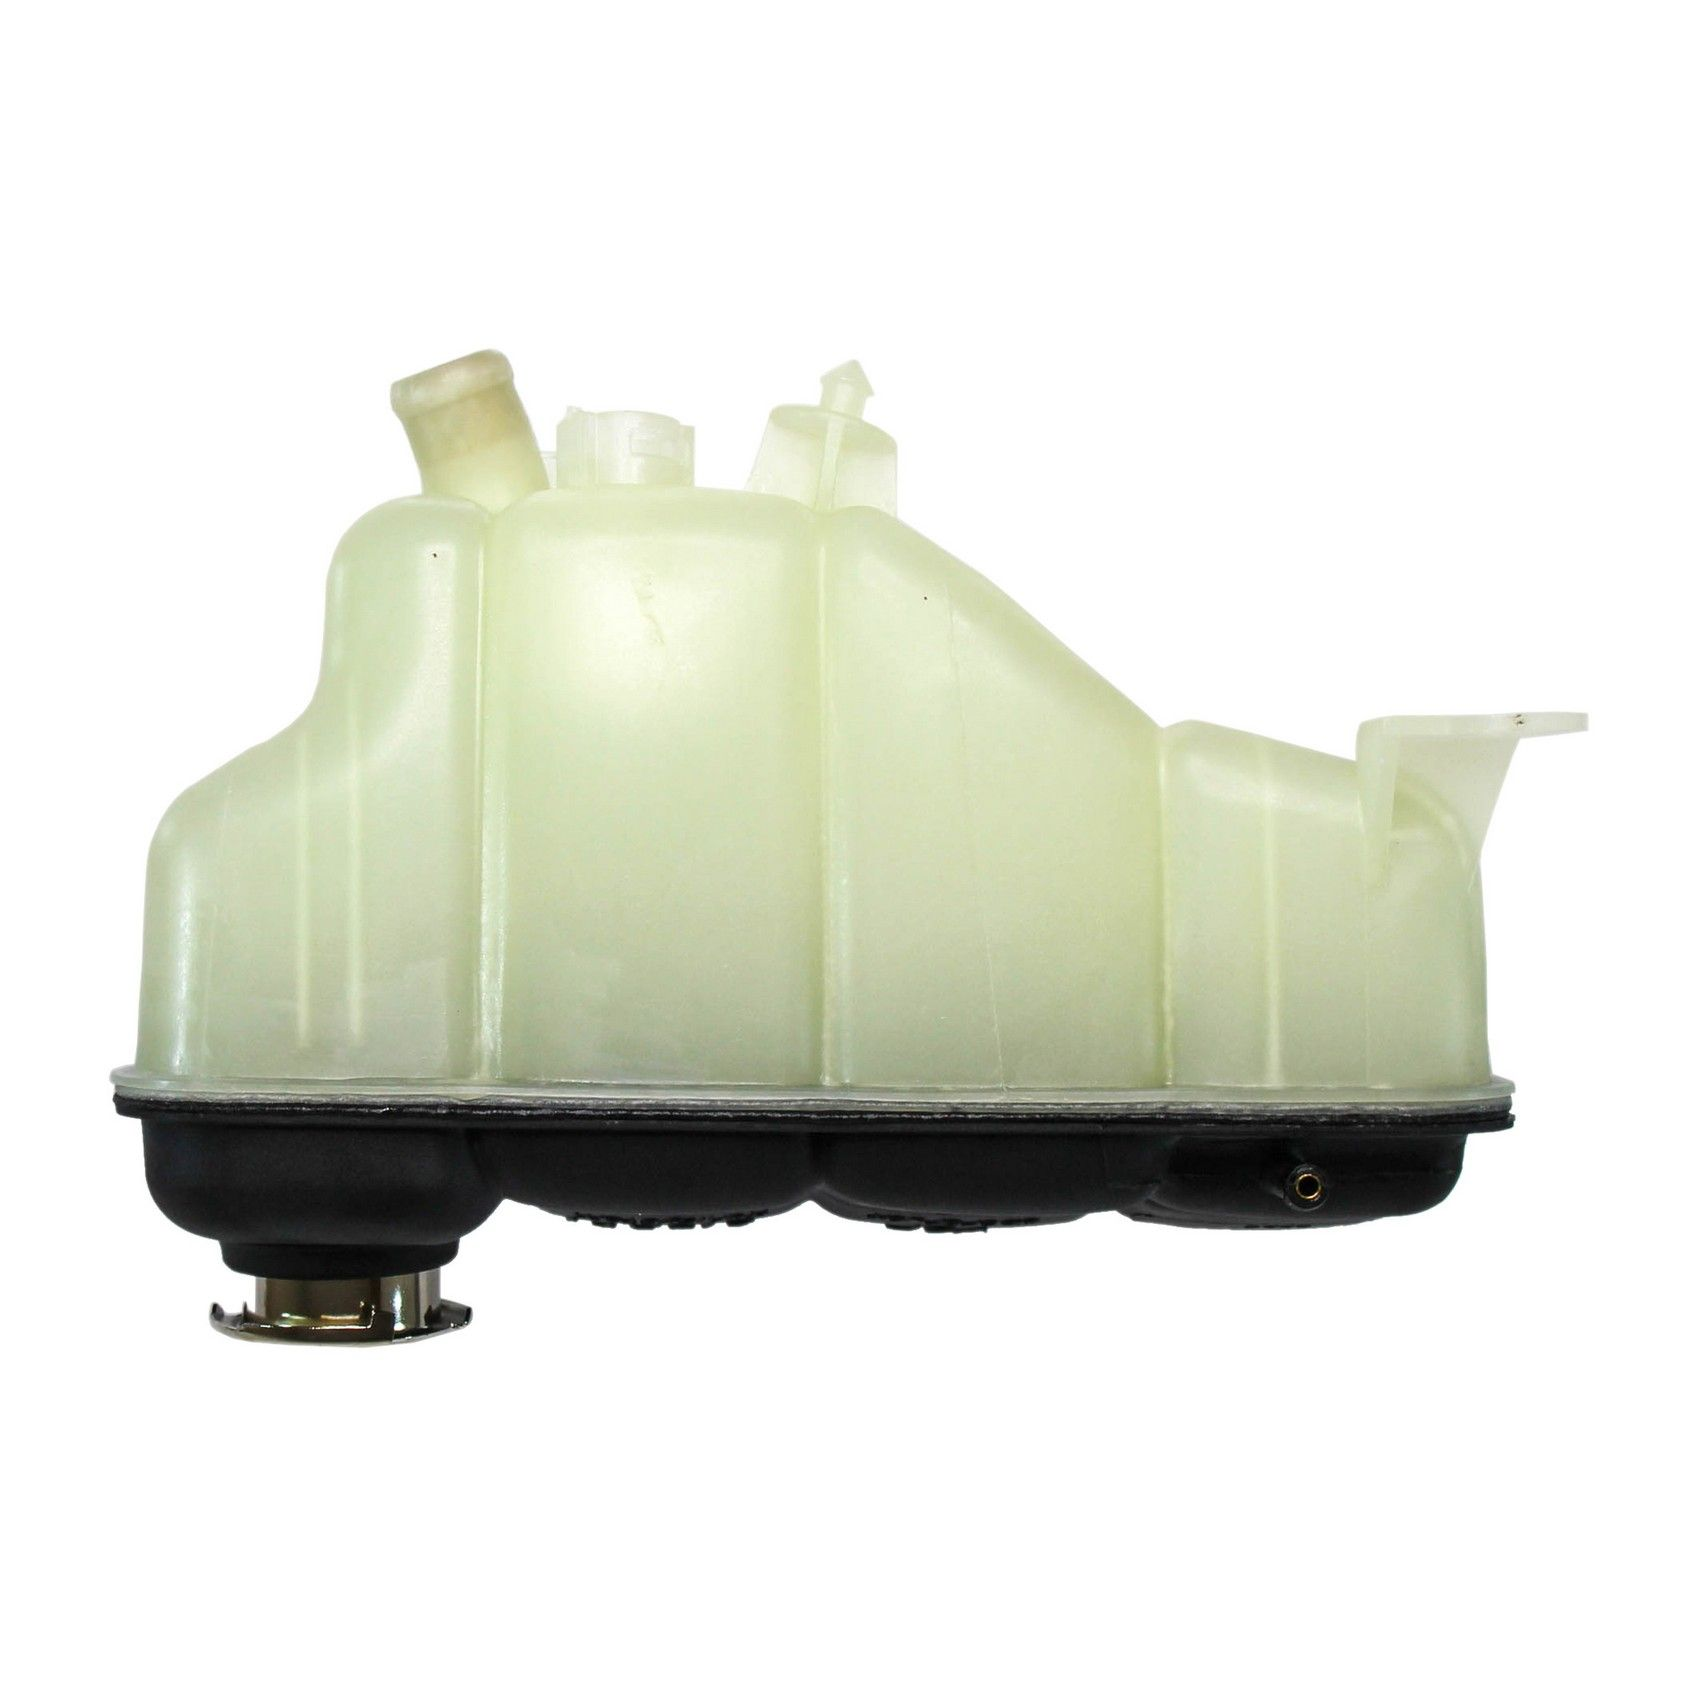 Mercedes Benz C280 Engine Coolant Reservoir Replacement Apa Uro 1995 6 Cyl 28l Crp Ept0005